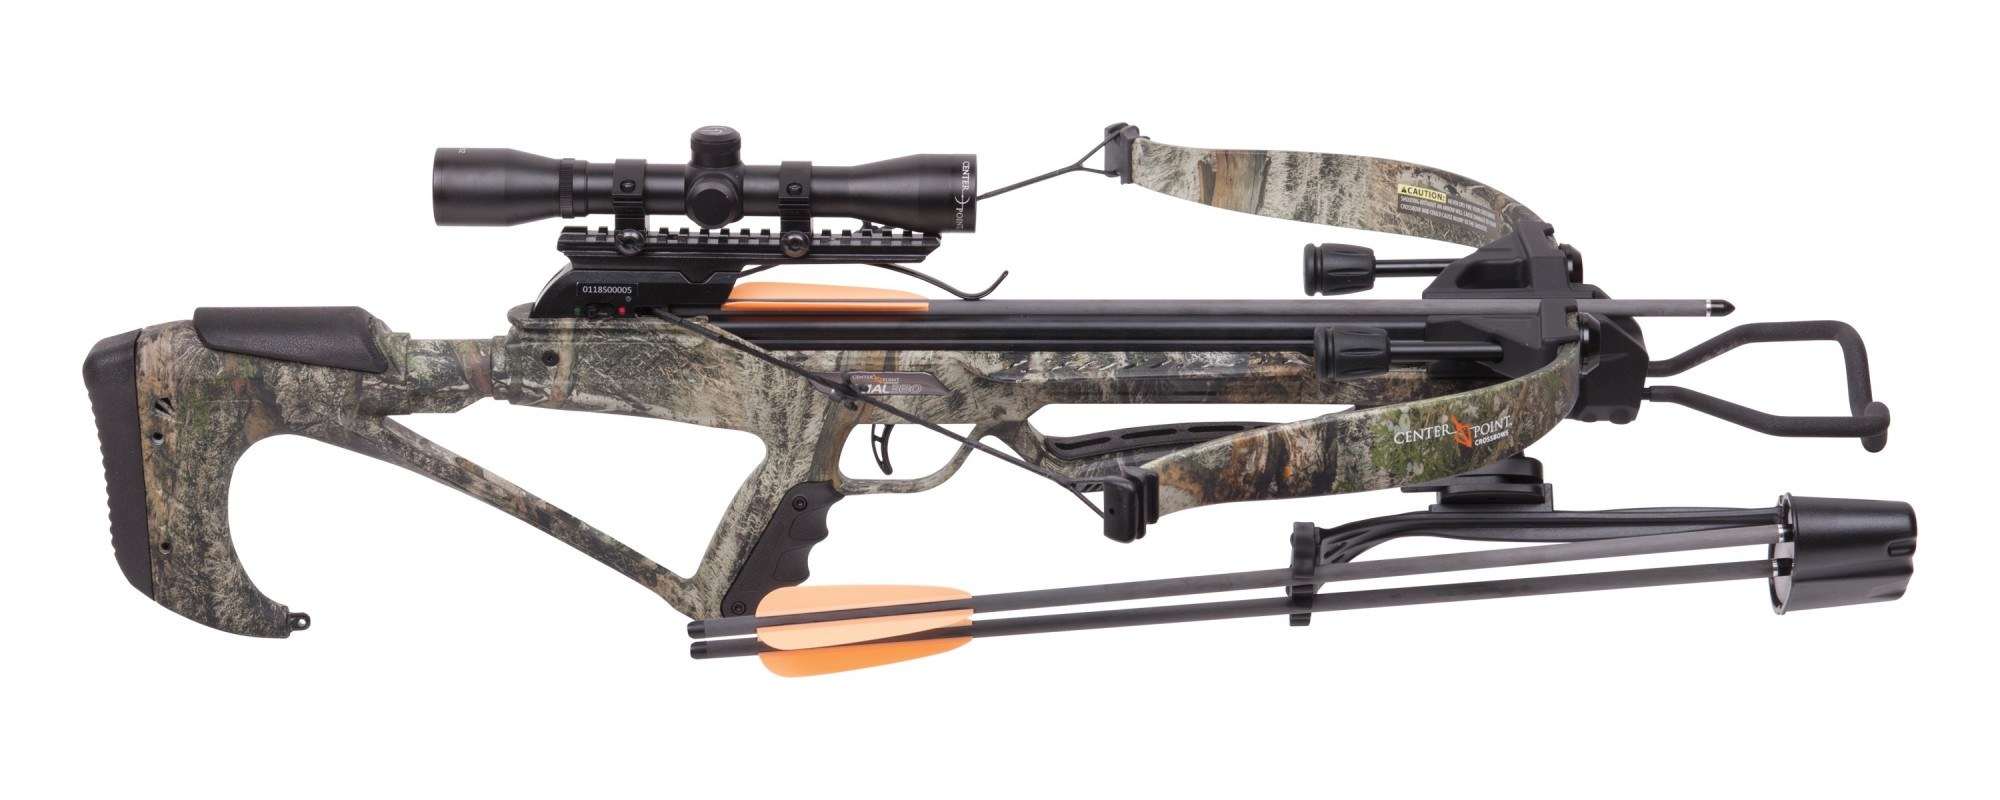 Primal 330 Recurve Crossbow (Model: AXRP220CK) | R and S Traders